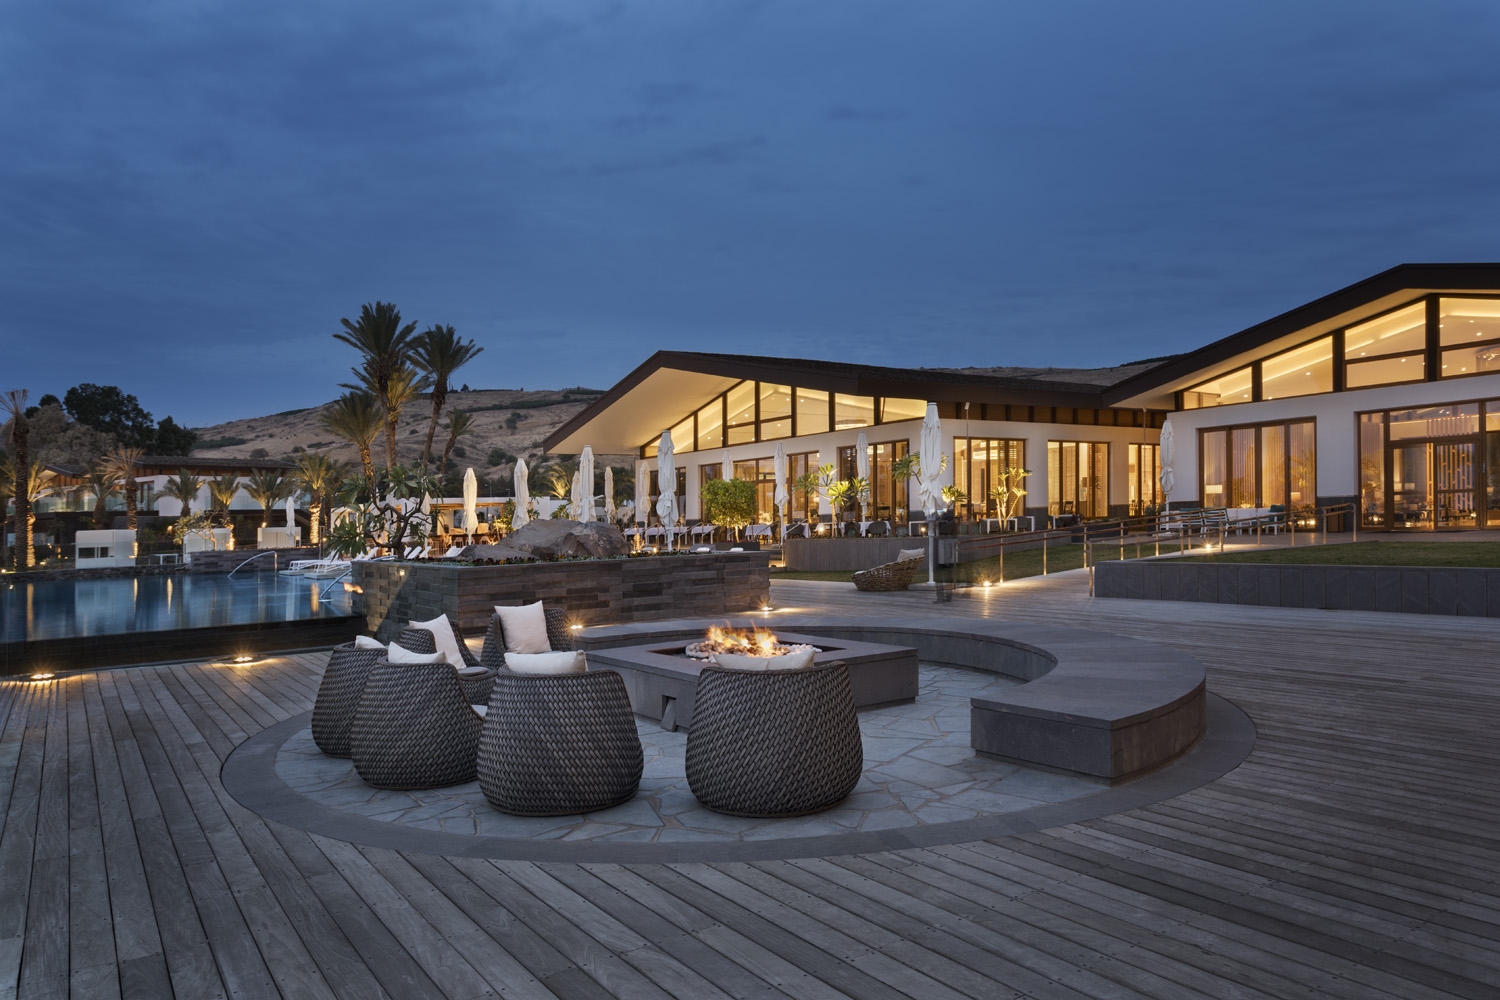 THE SETAI HOTEL SEA OF GALILEE